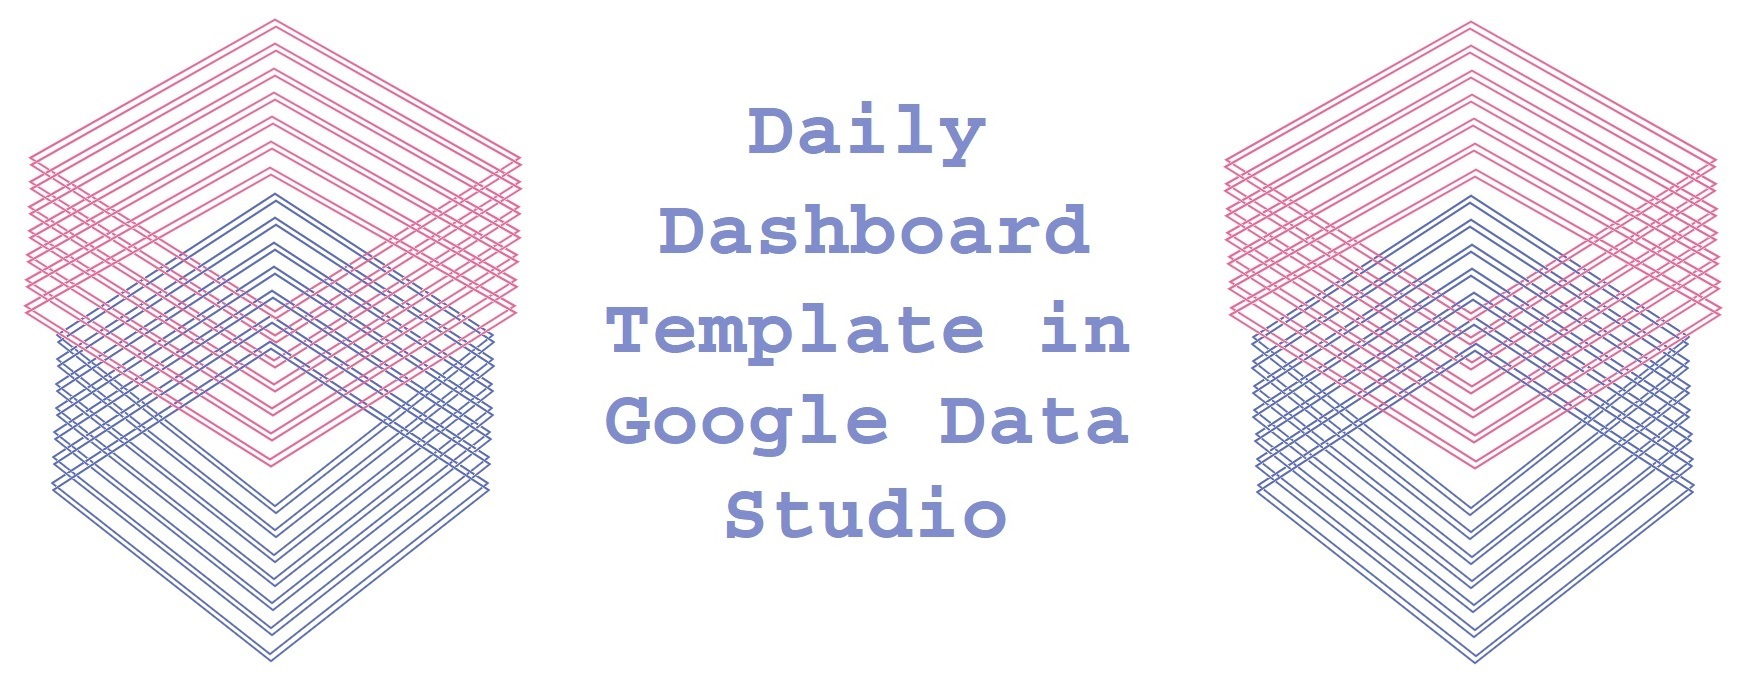 Daily Dashboard template in Google Data Studio